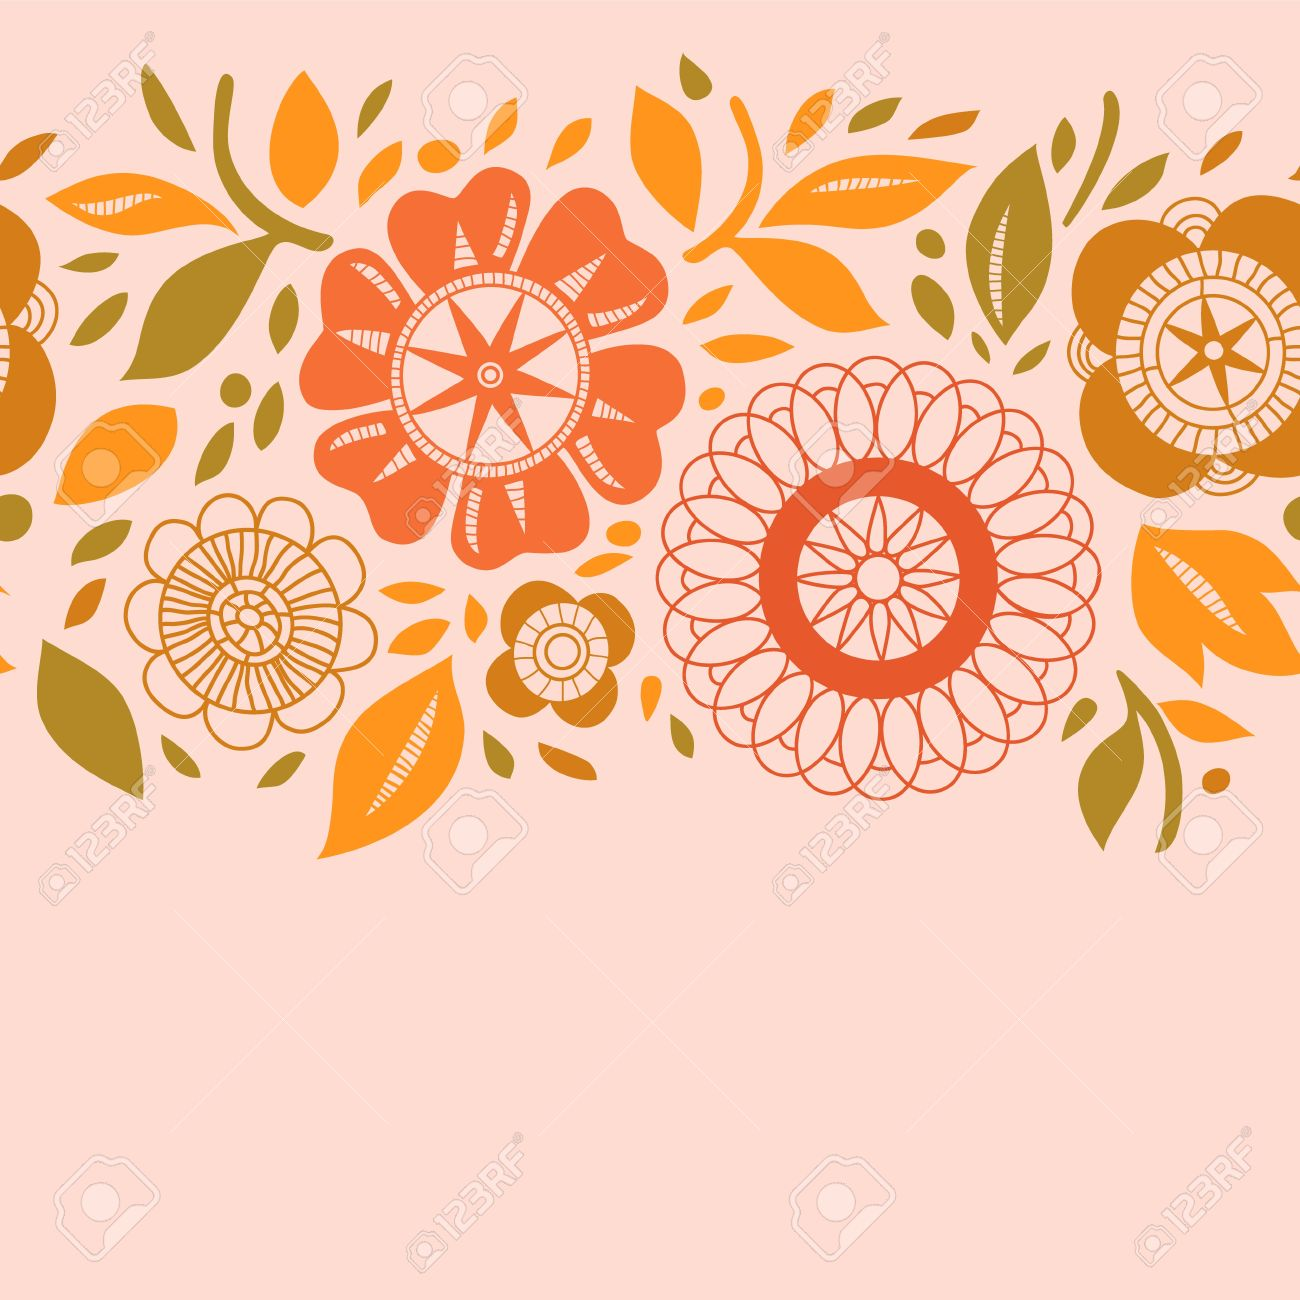 Pastel leaves background clipart vector library stock Flowers And Leaves In Warm Pastel Colors Autumn Seamless ... vector library stock